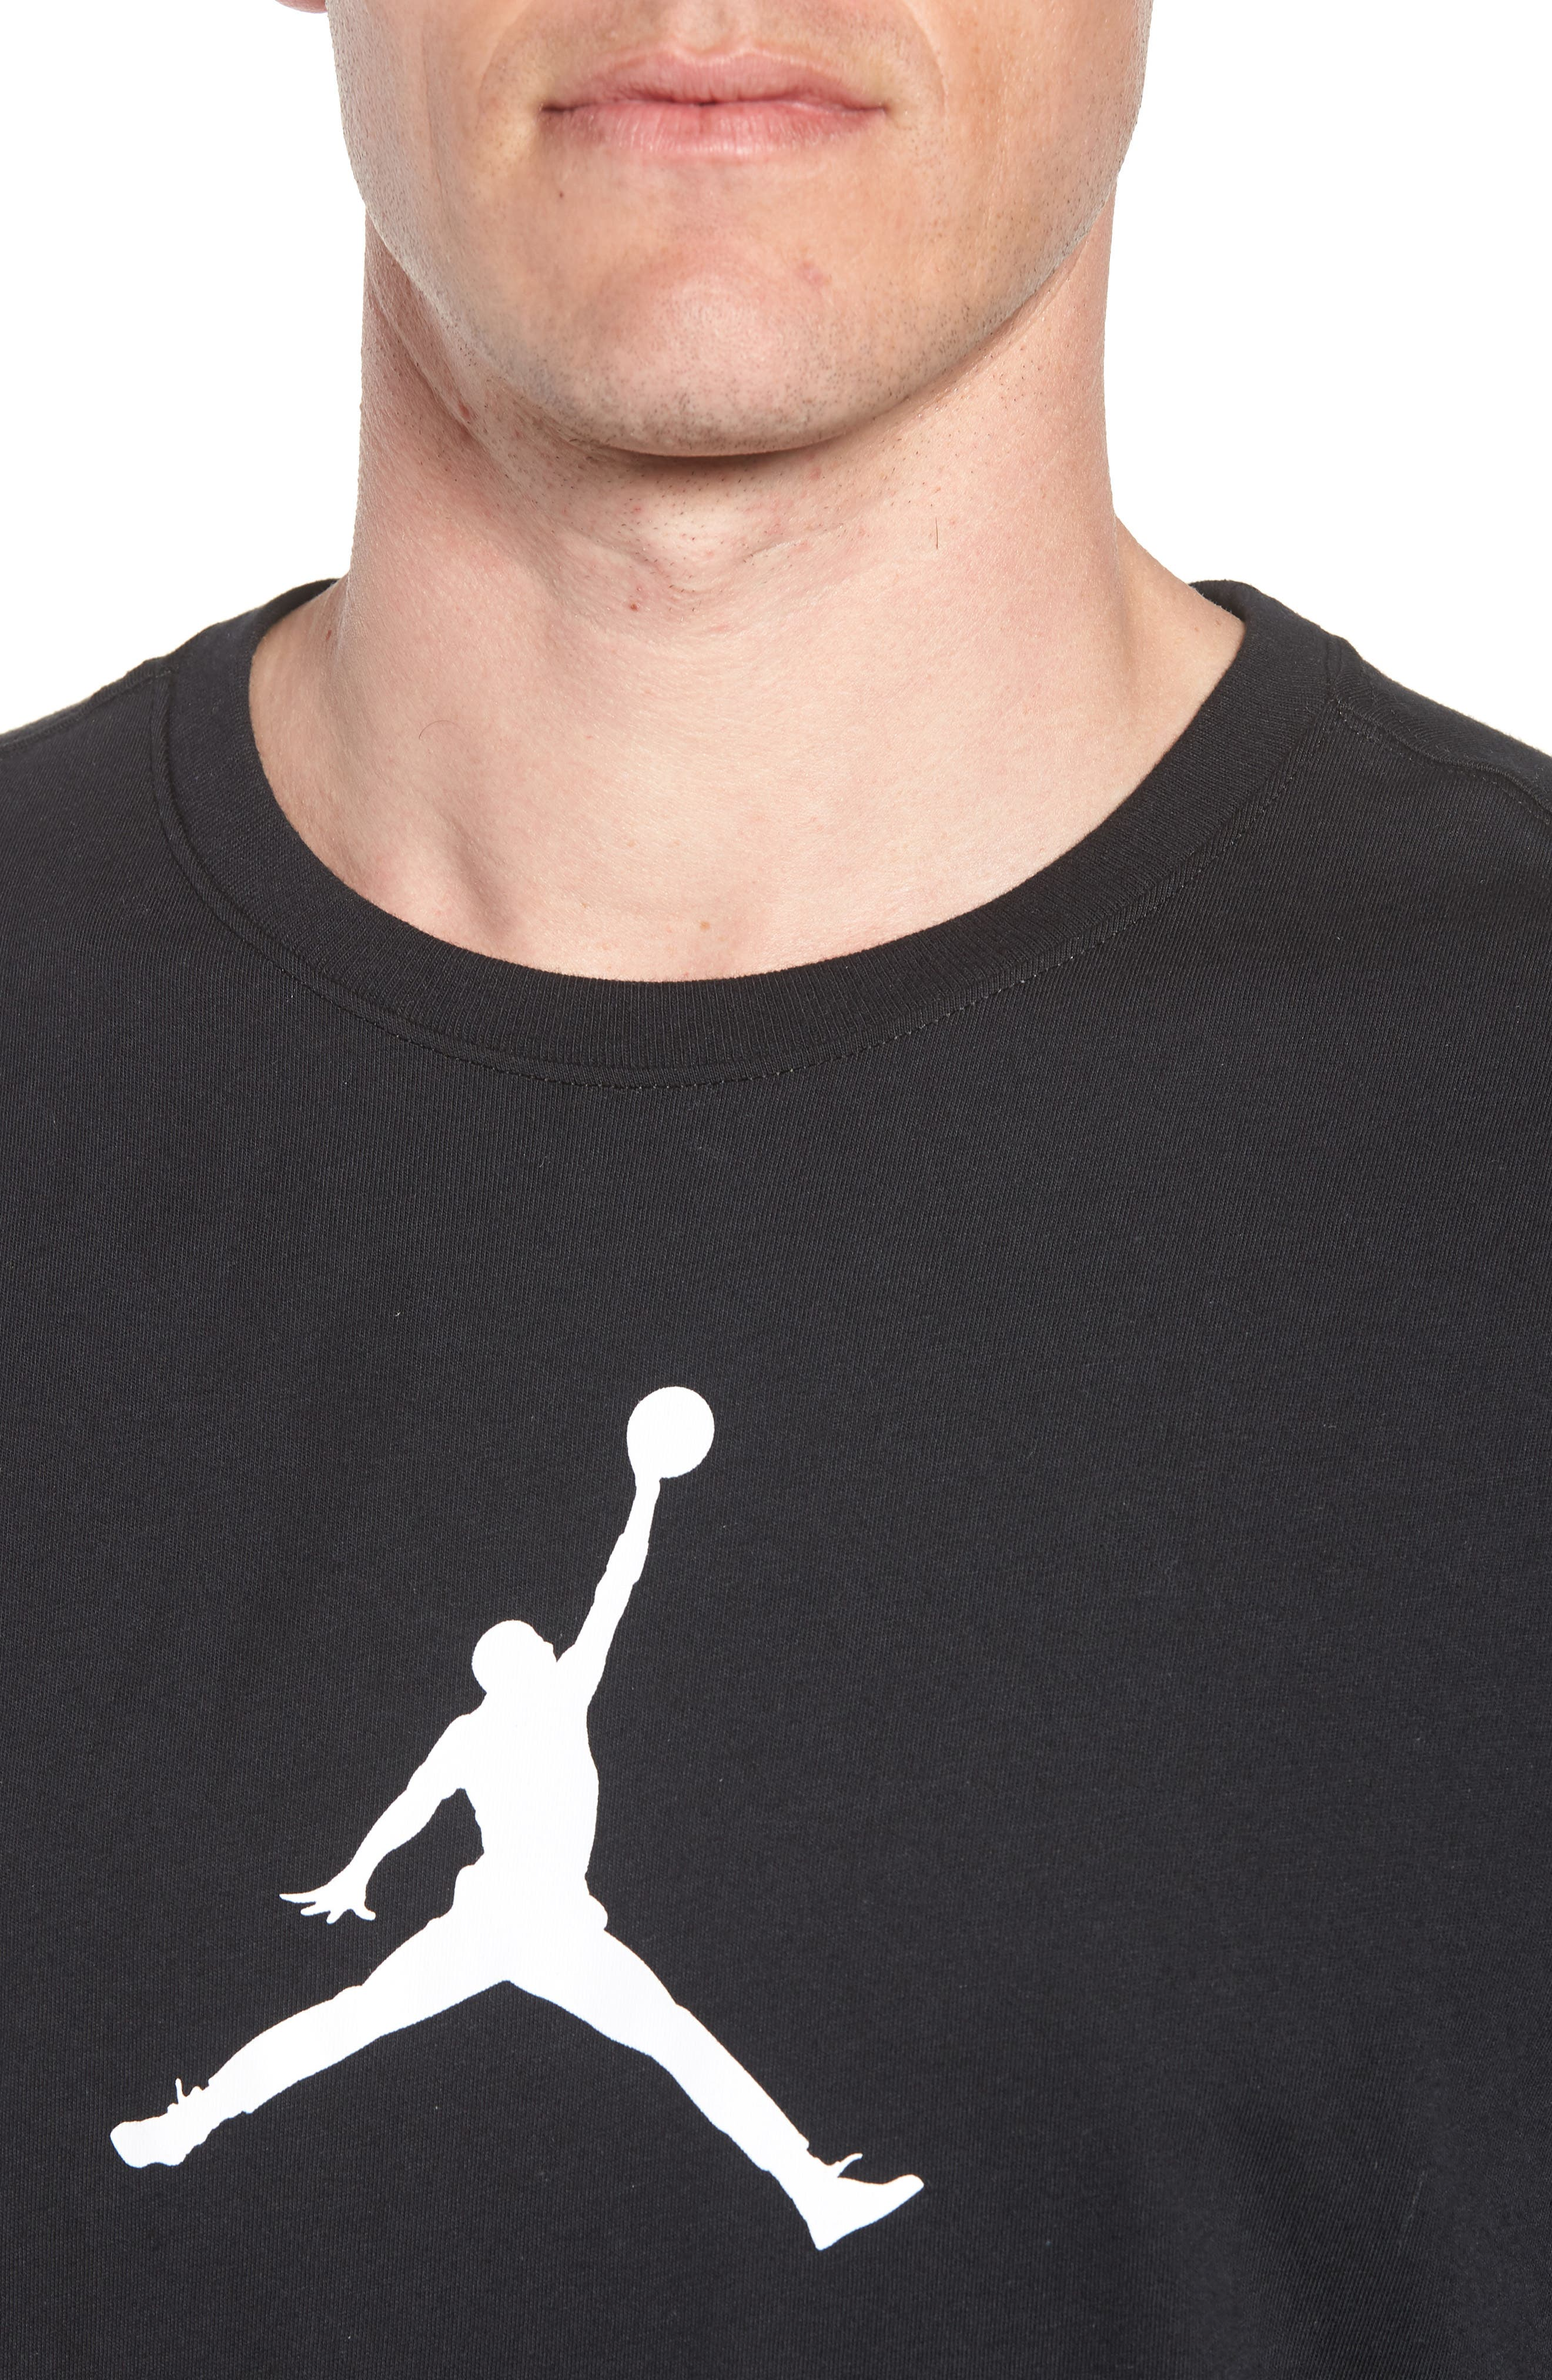 Iconic Jumpman Graphic T-Shirt,                             Alternate thumbnail 4, color,                             010